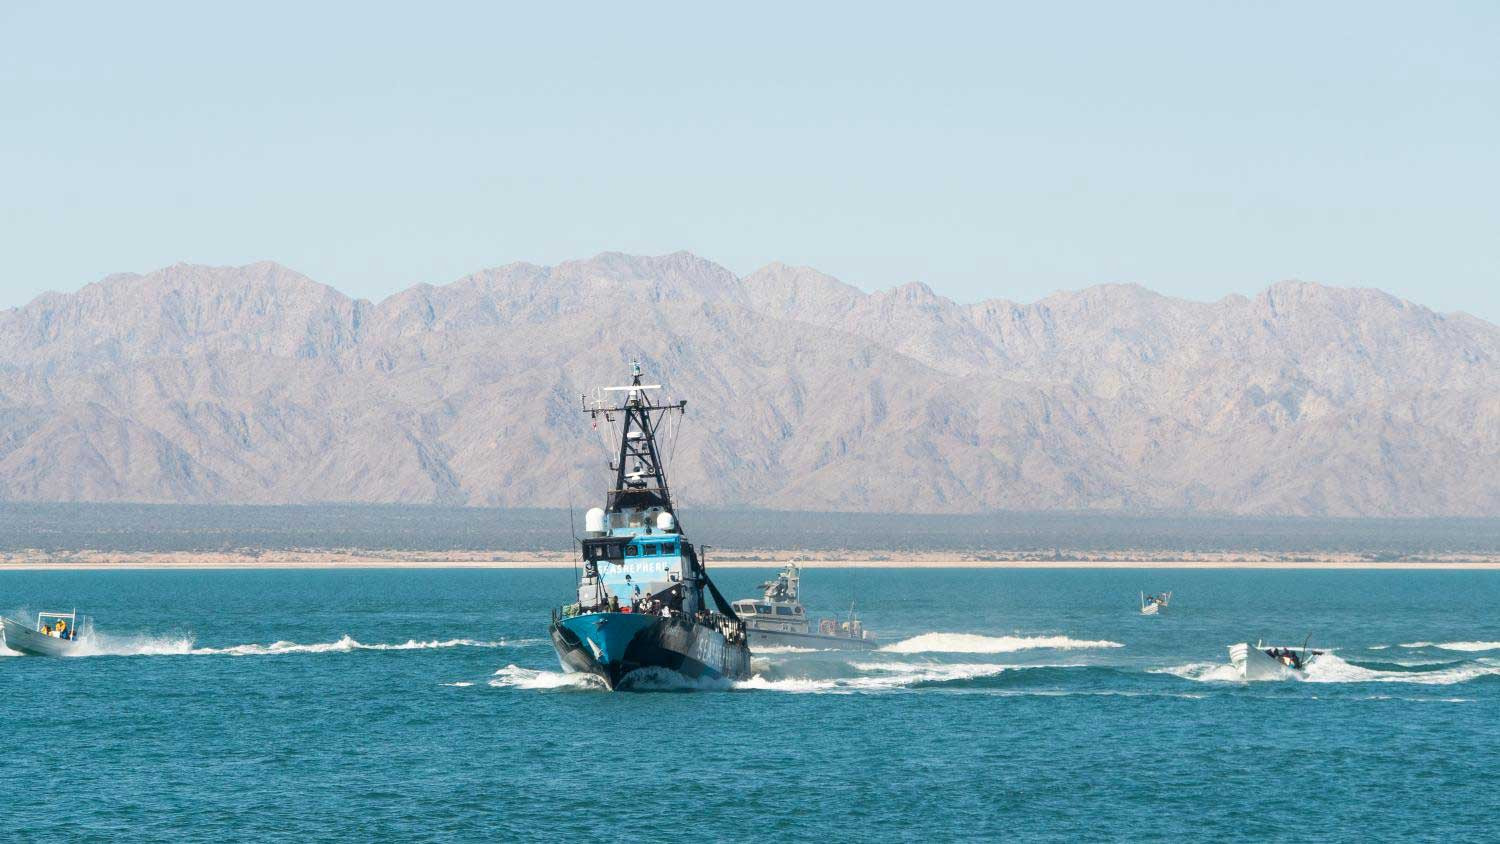 At least 20 small fishing boats surround Sea Shepherd's ship M/V Sharpie in the vaquita refuge on March 3, 2020.